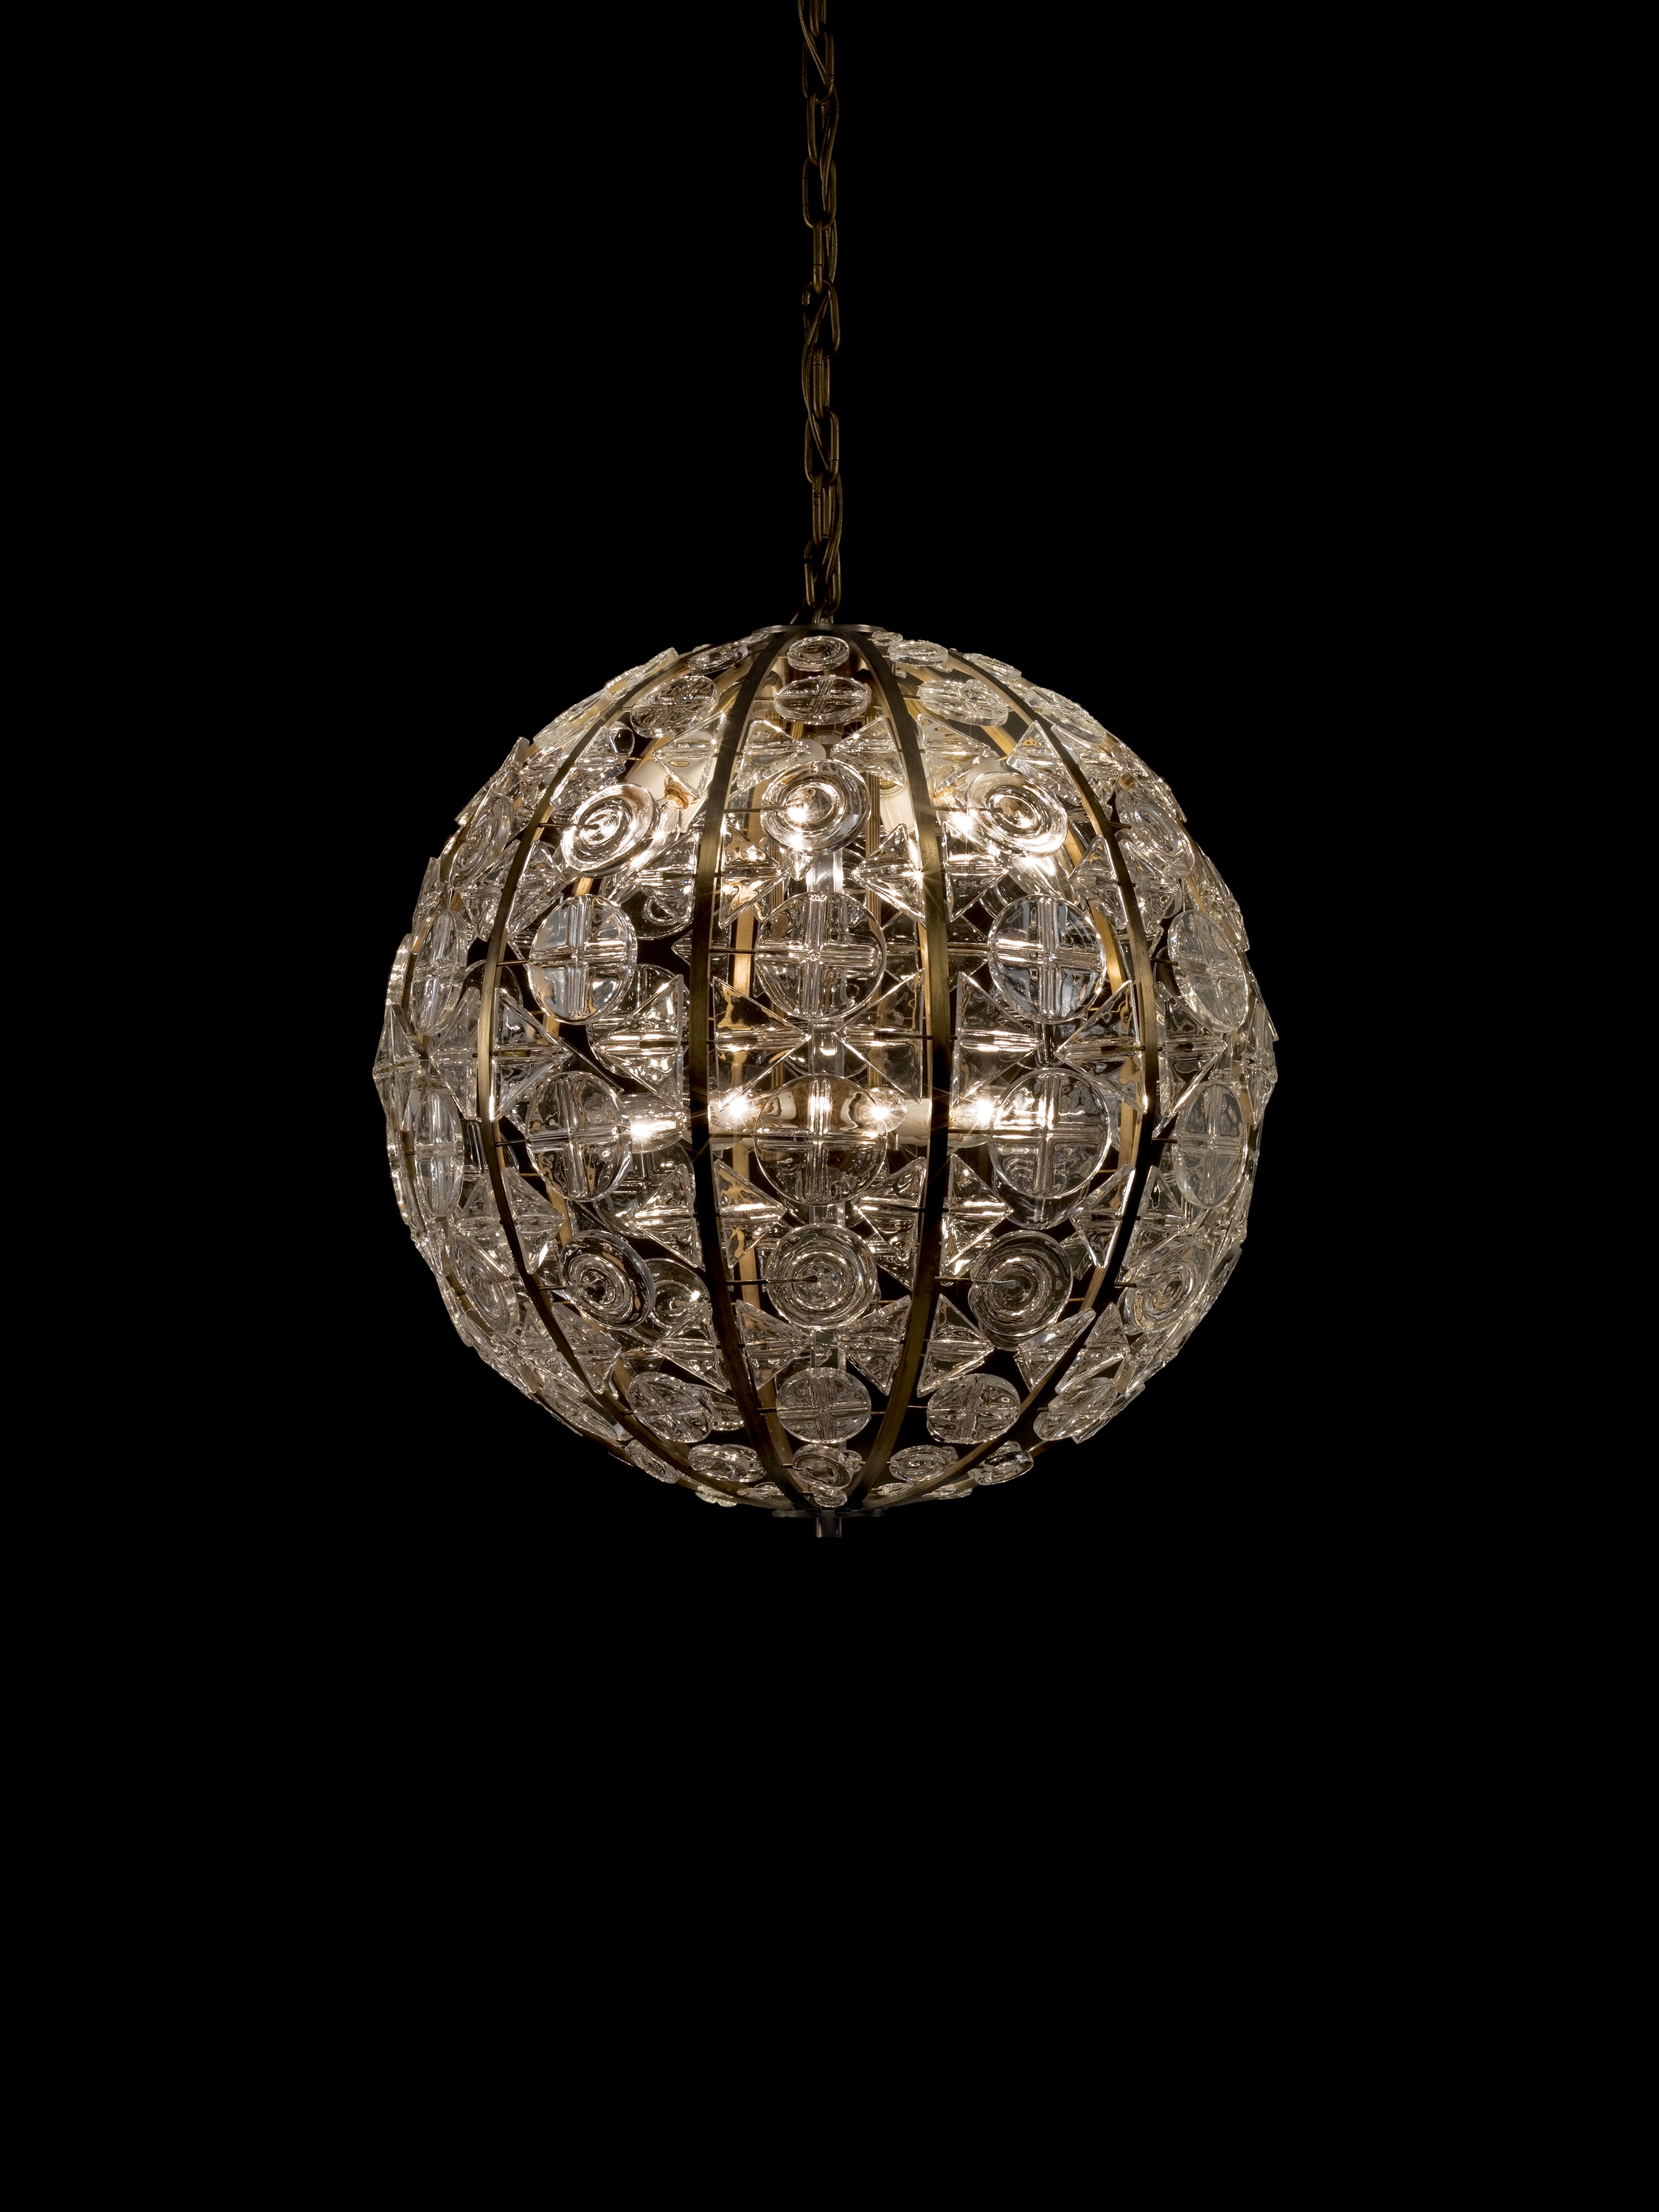 Brilliant sphere chandelier metal orb chandelier with interesting Cheap Price for your Home Lighting